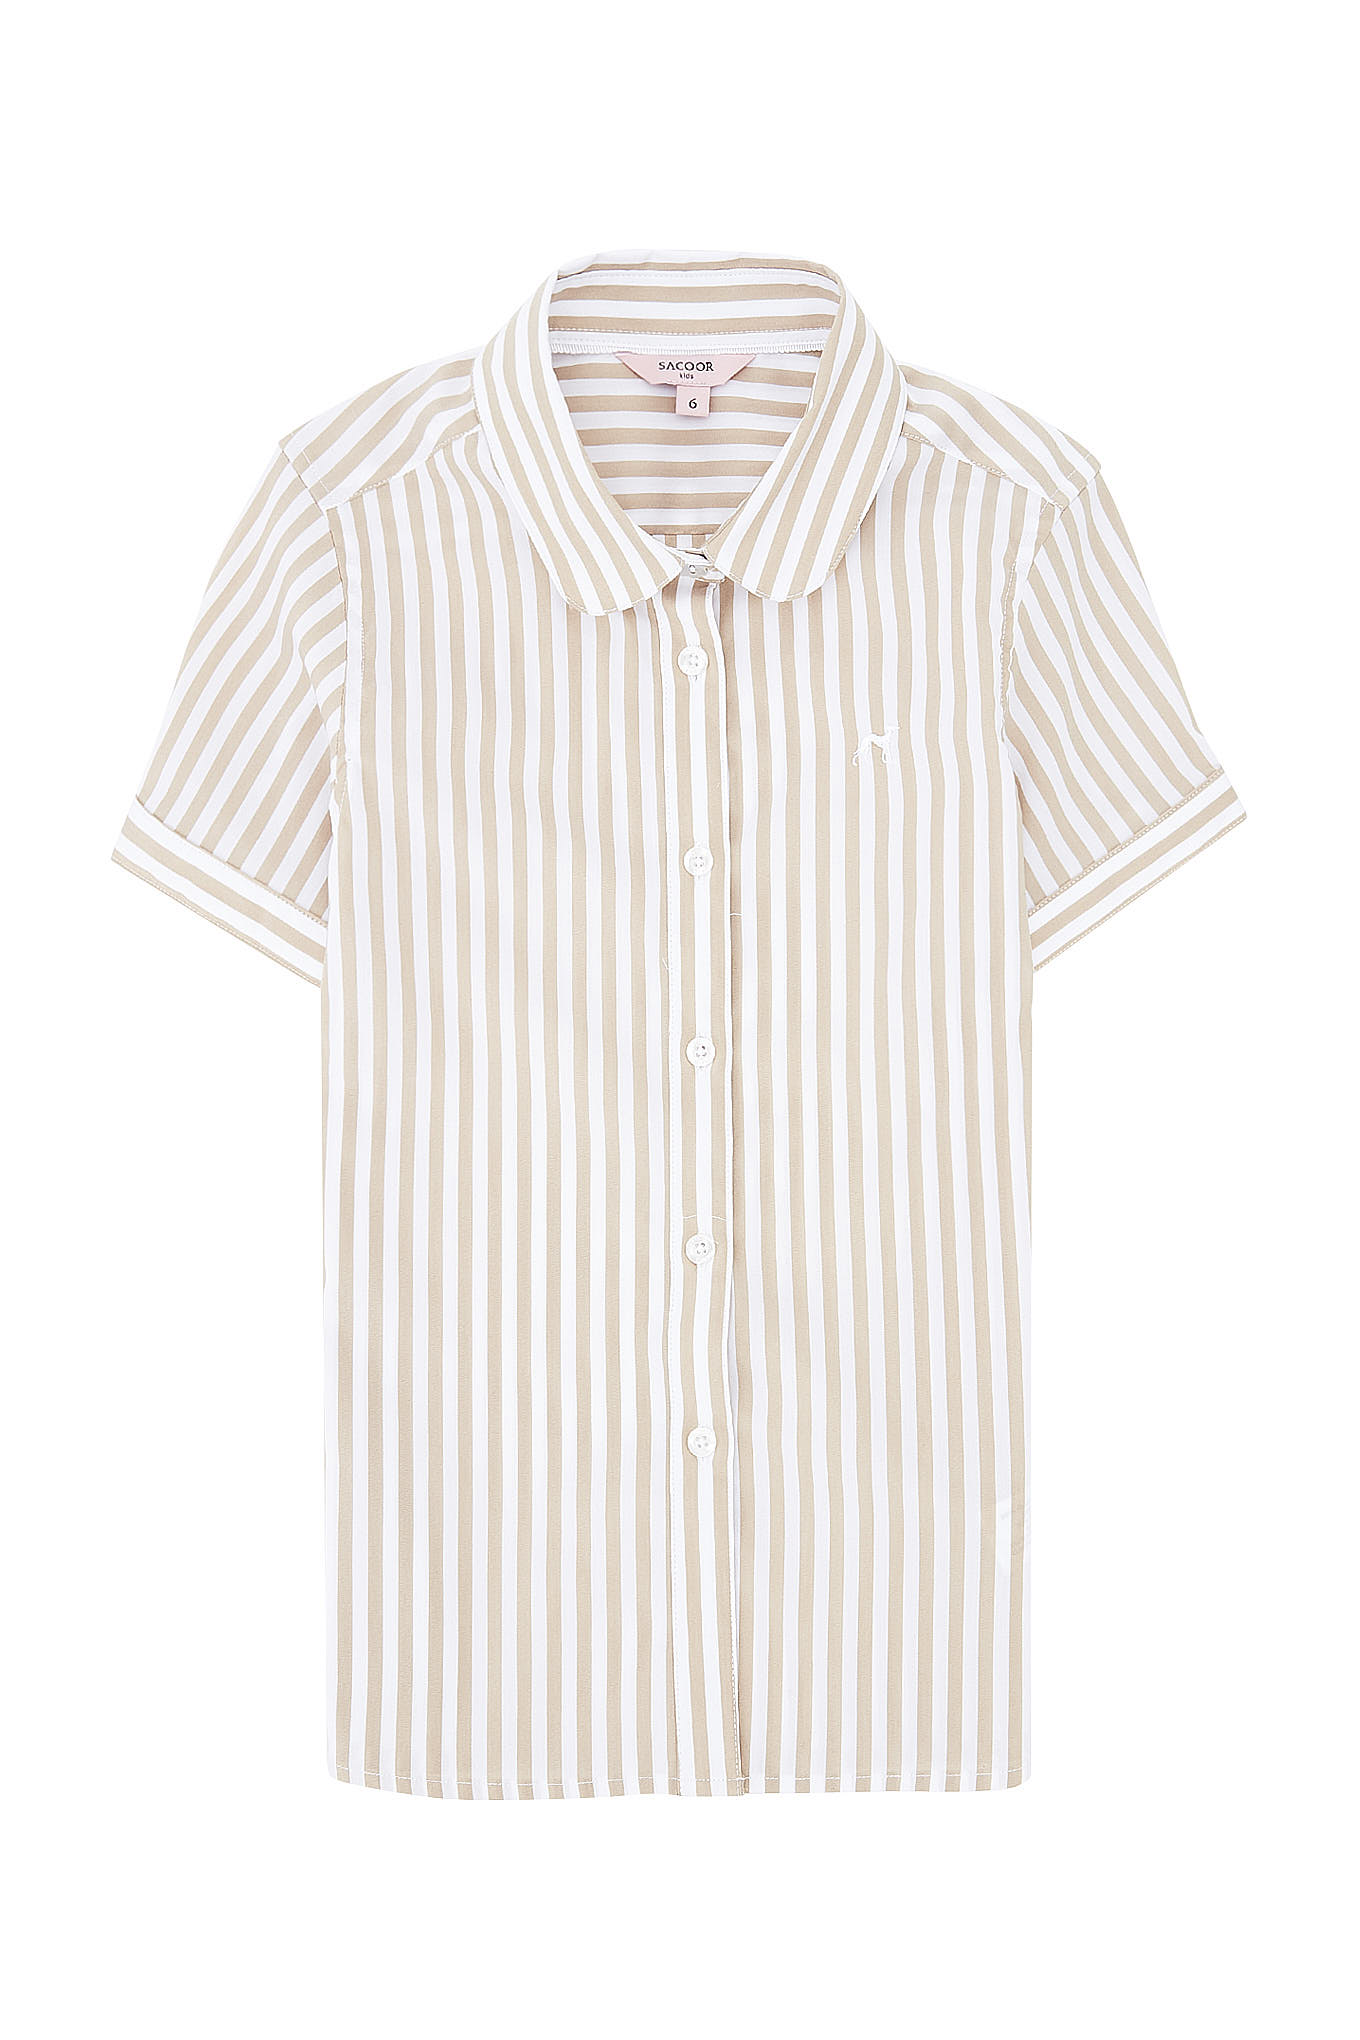 Shirt Stripes Casual Girl